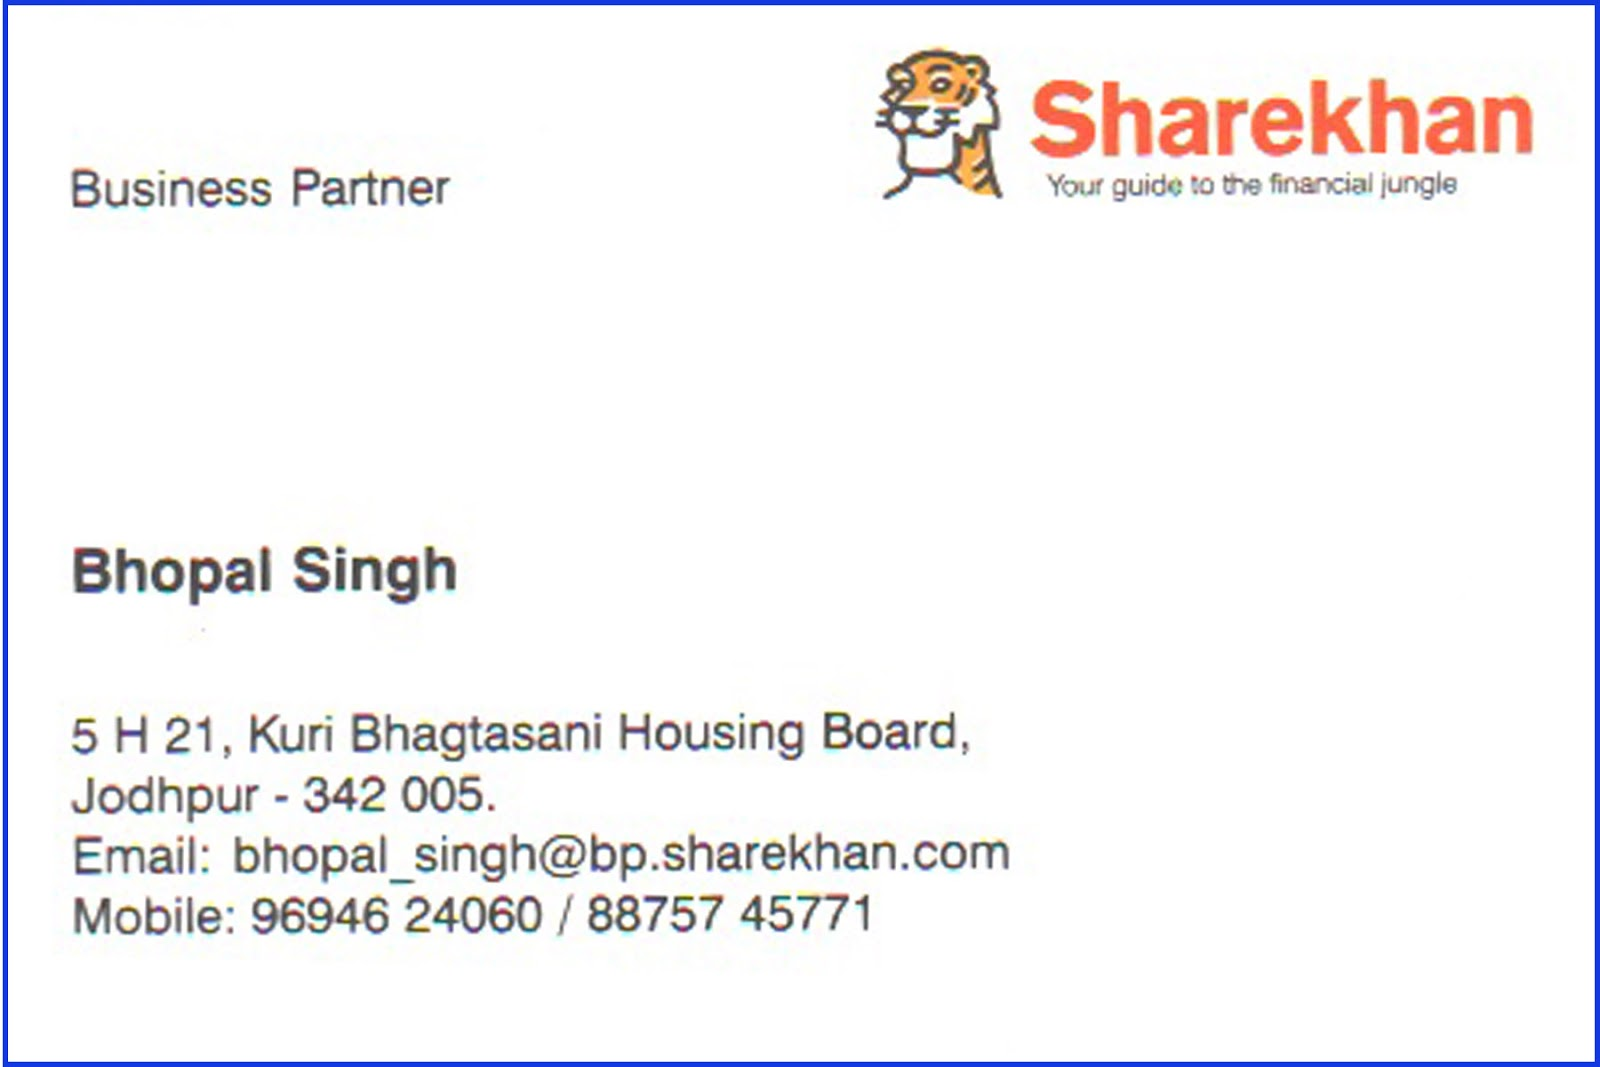 Jai naganarai investment this is my visiting card for all clients join sharekhan and feel different magicingreecefo Gallery